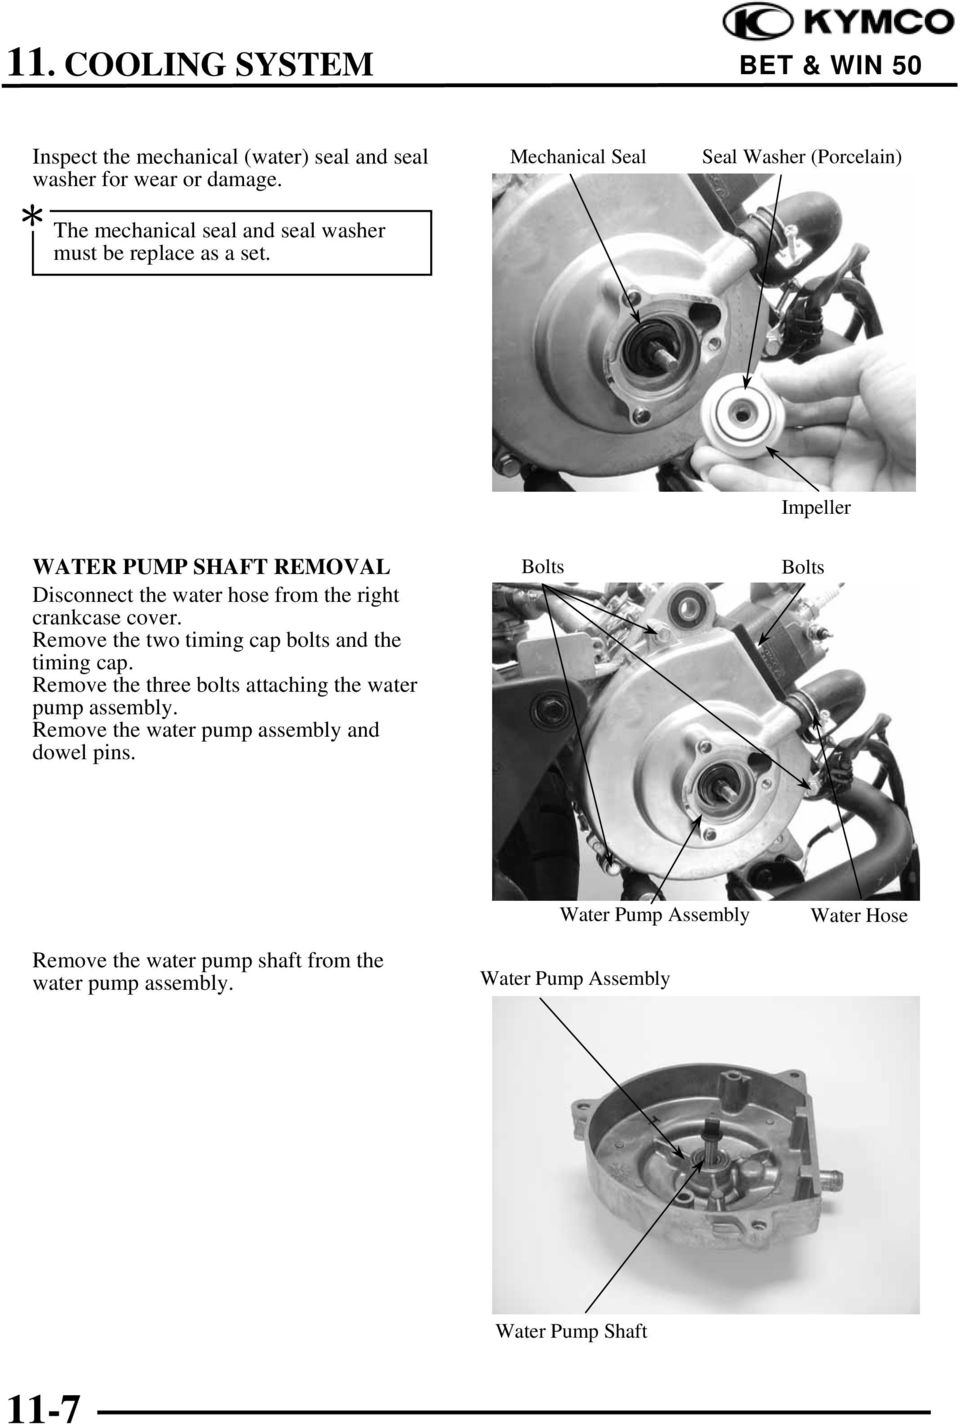 Remove the two timing cap bolts and the timing cap. Remove the three bolts attaching the water pump assembly.